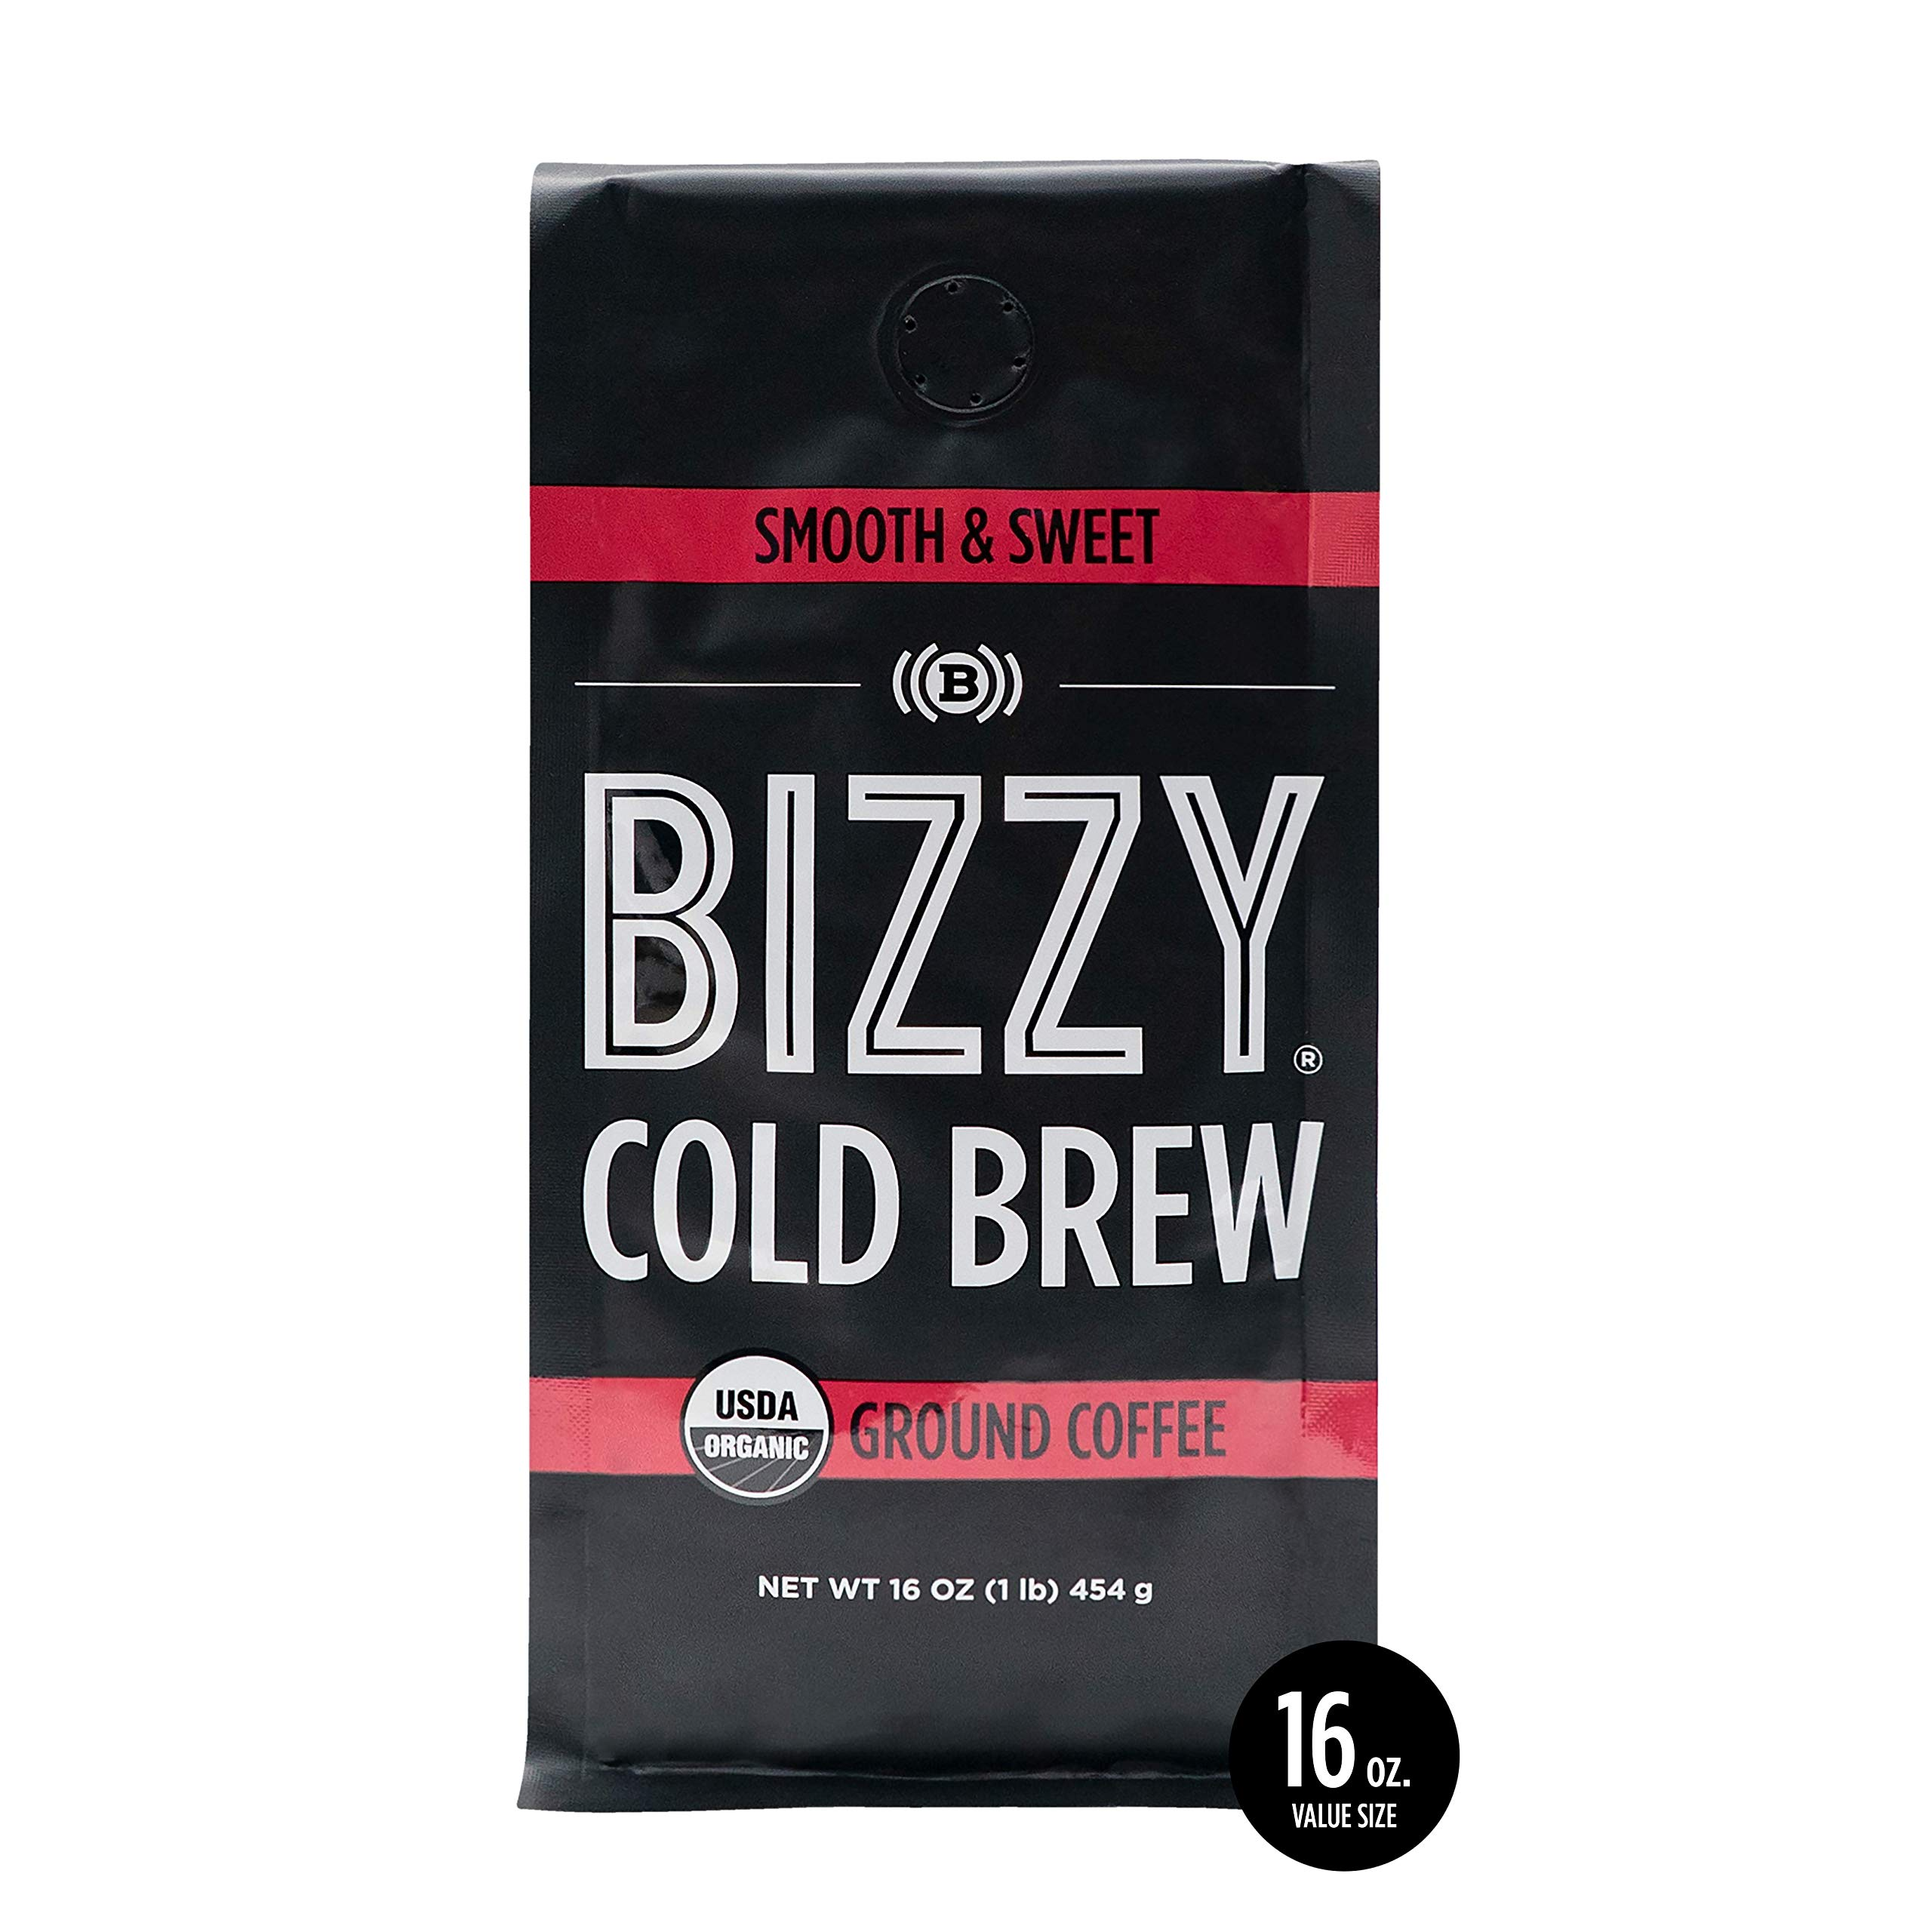 Bizzy Organic Cold Brew Coffee | Smooth & Sweet Blend | Coarse Ground Coffee | 16 oz by Bizzy